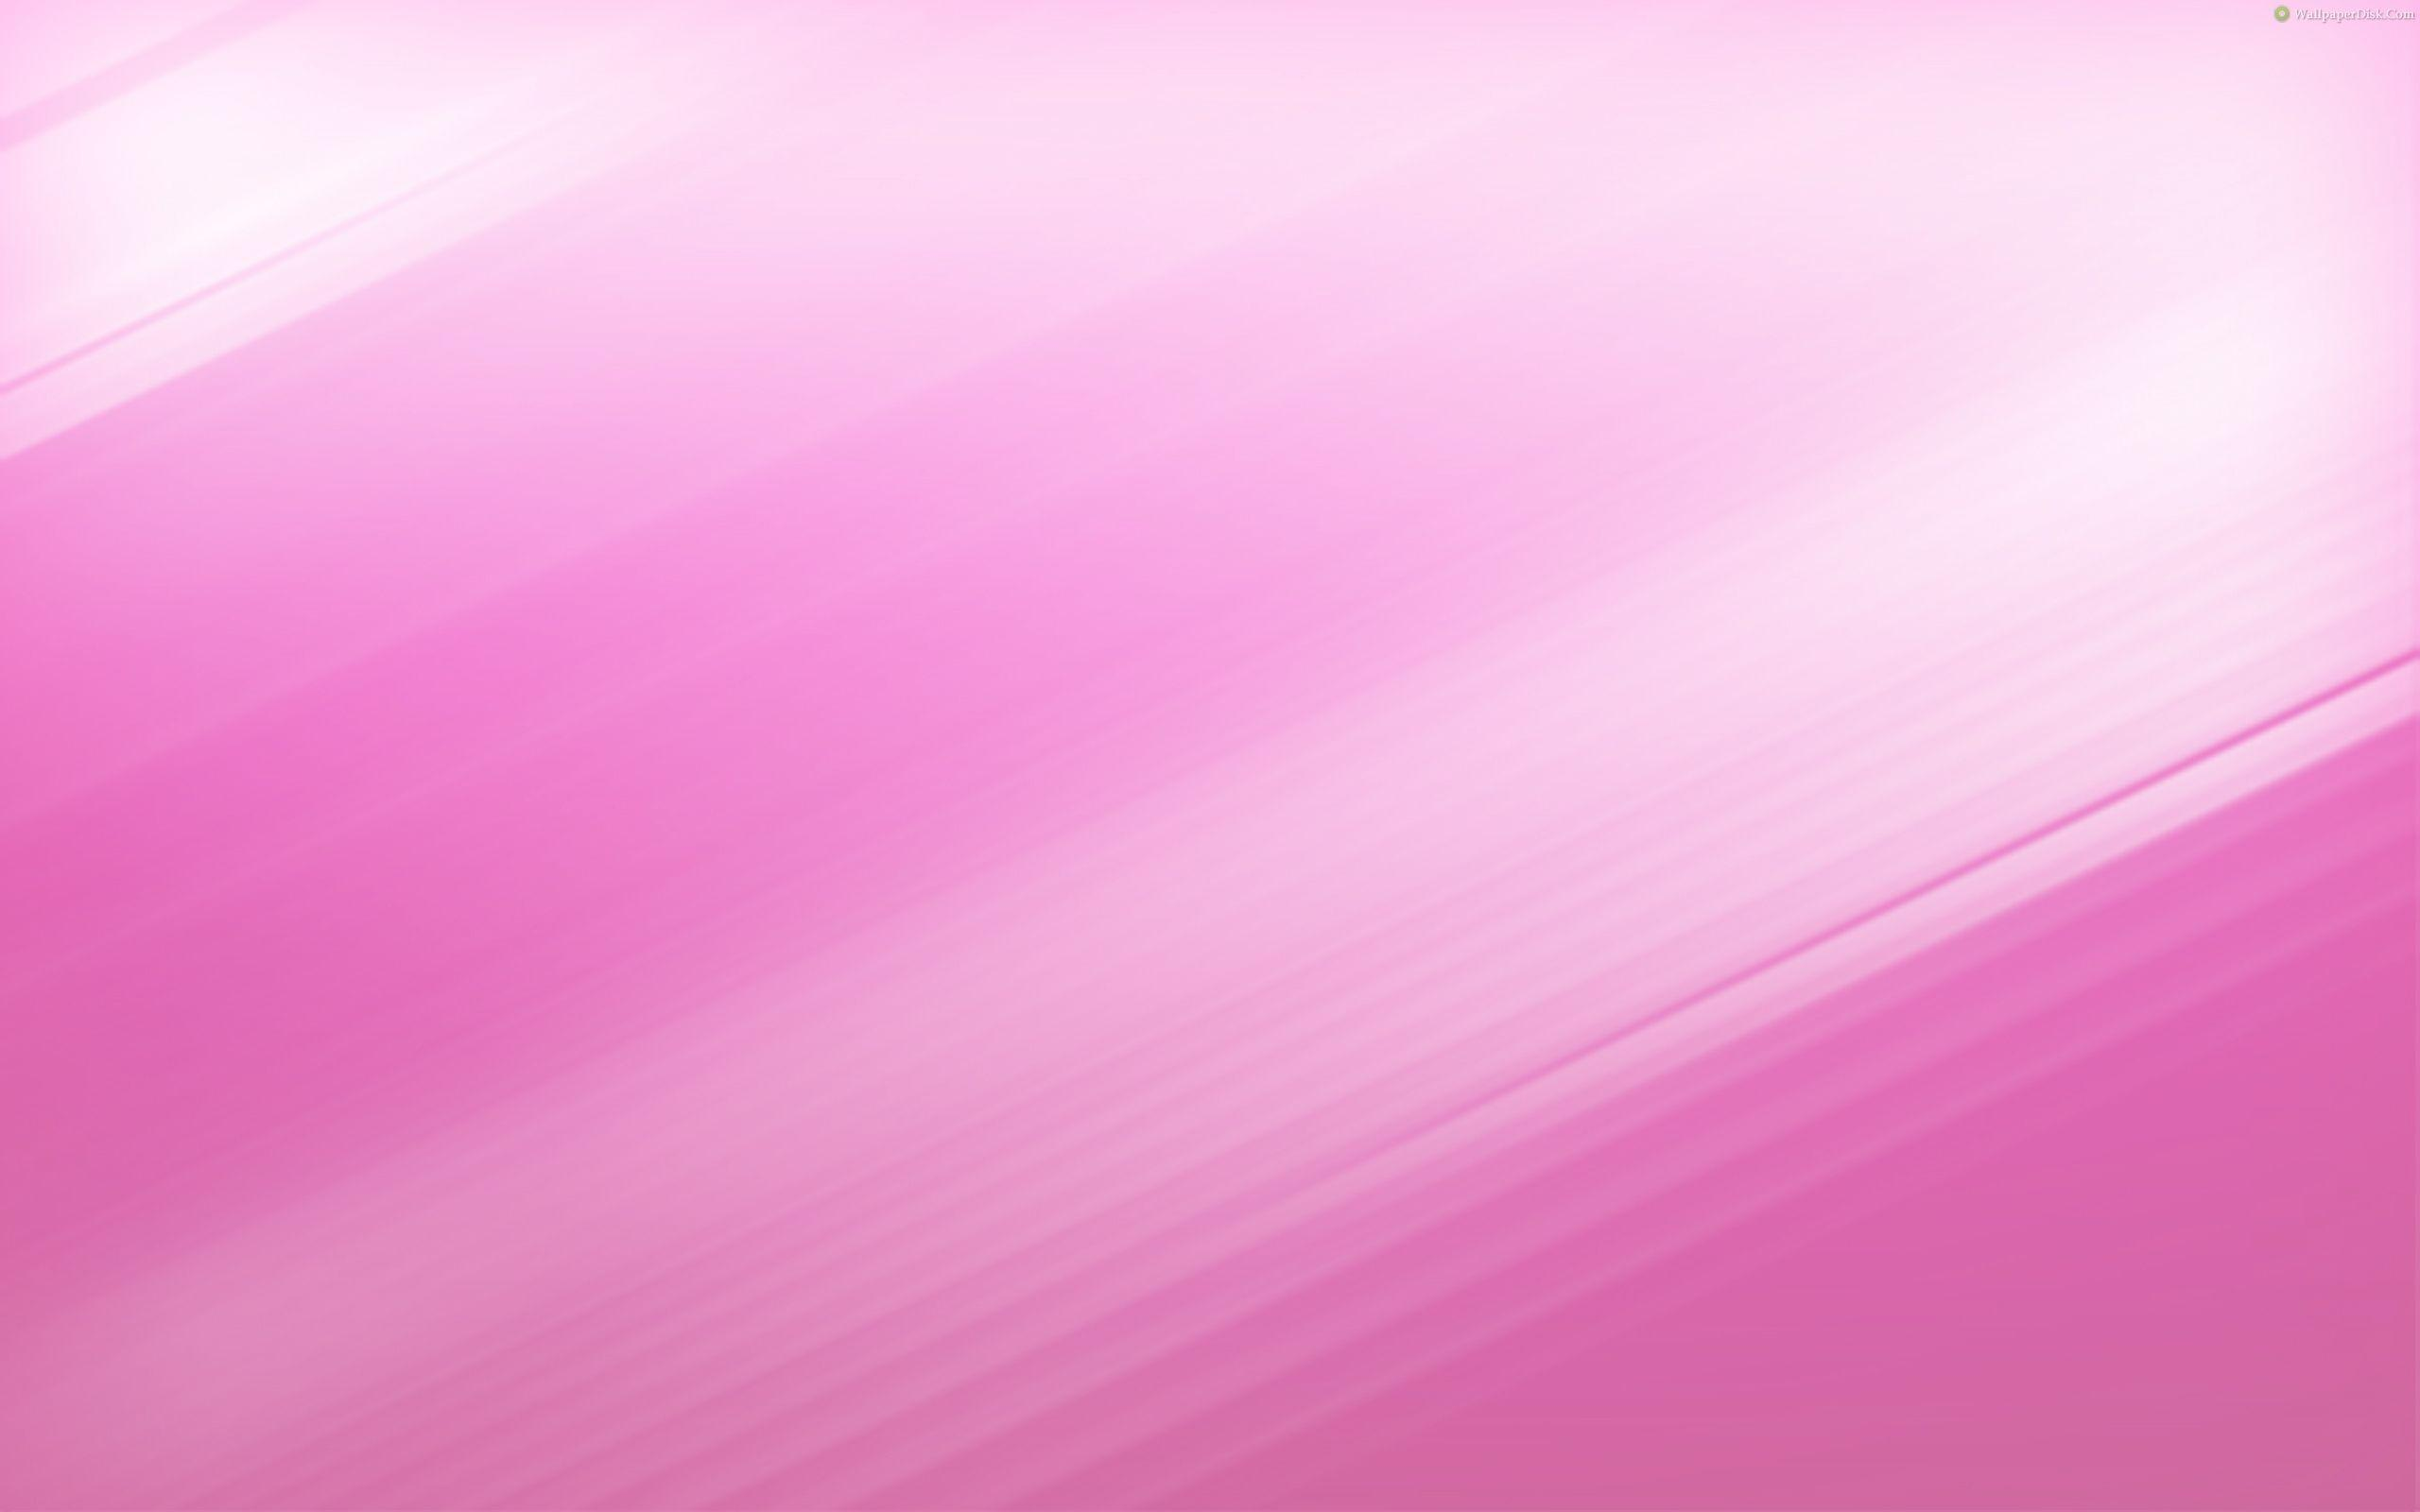 Pink Backgrounds Wallpapers - Wallpaper Cave